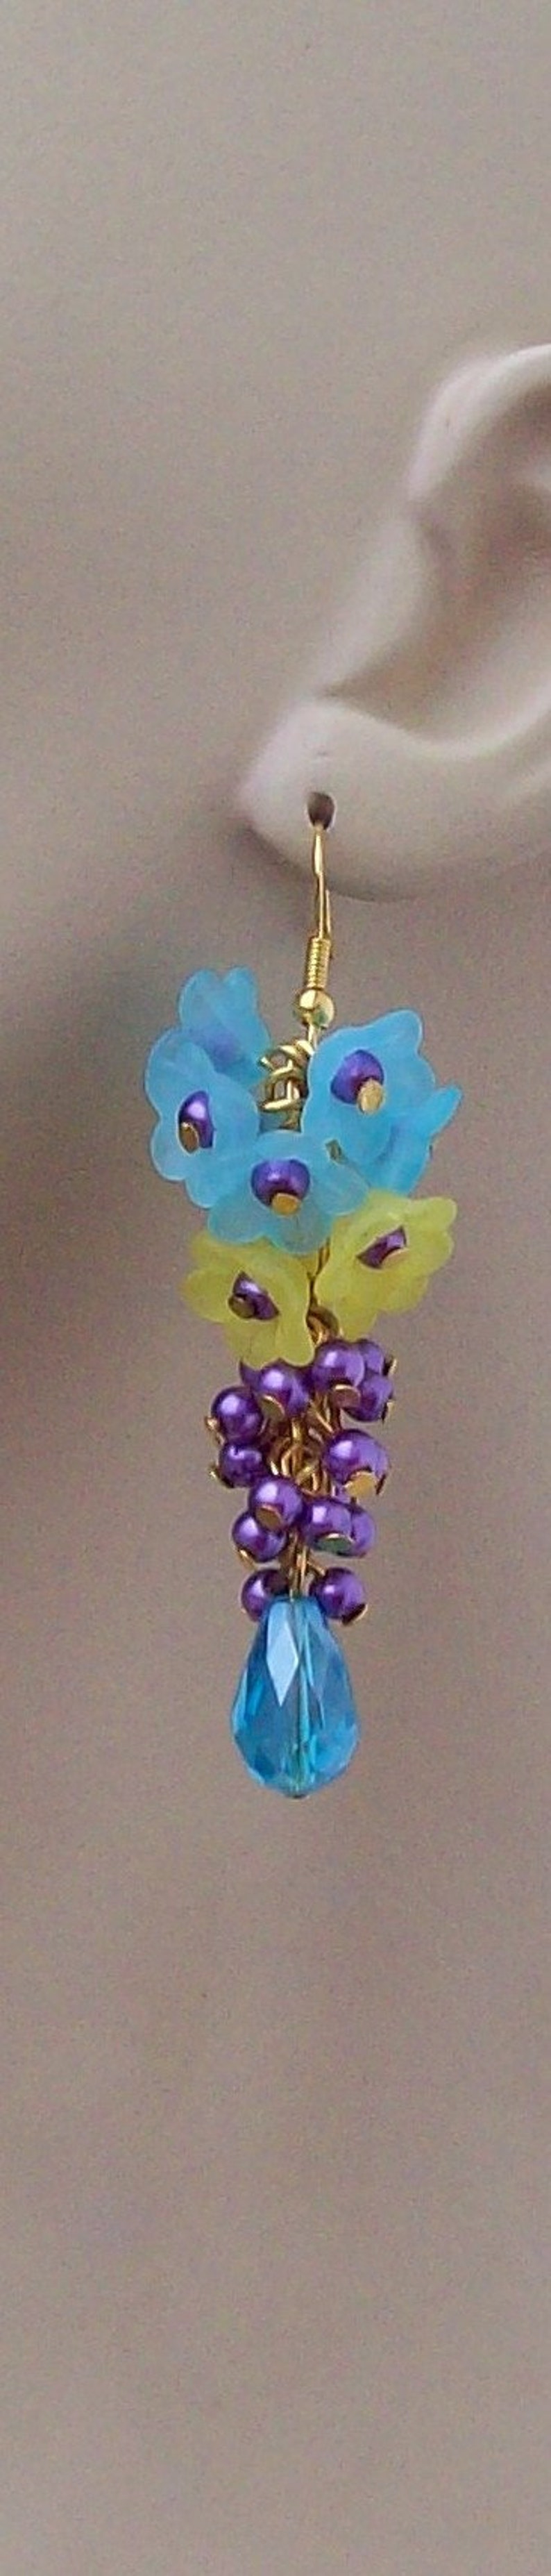 Floral Lucite Beads Cluster Earrings Crystals Pearls